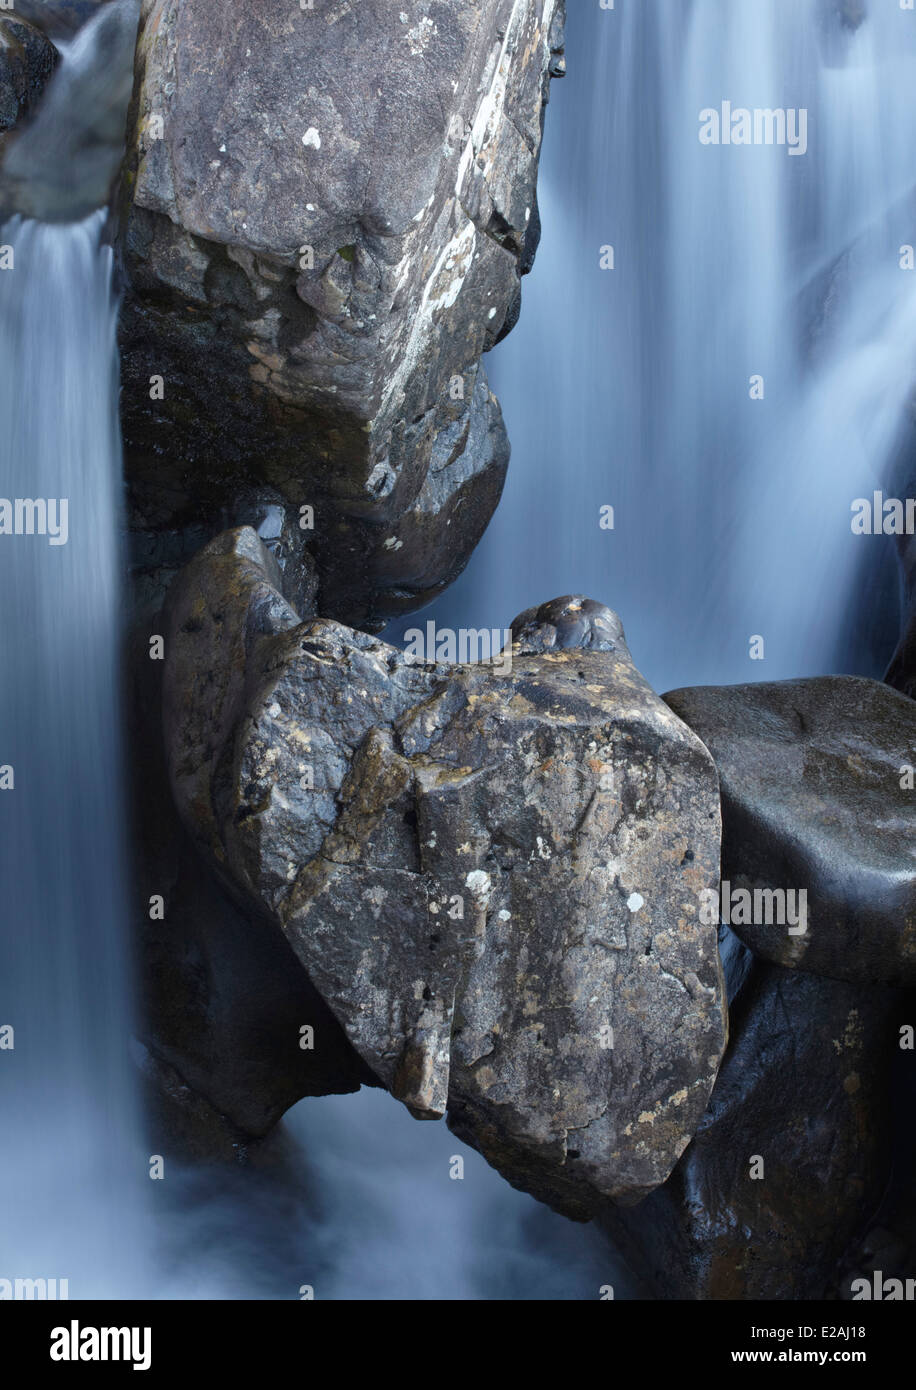 Abstract study from the Fairy pools waterfalls, Glen Brittle, Isle of Skye, Scotland - Stock Image